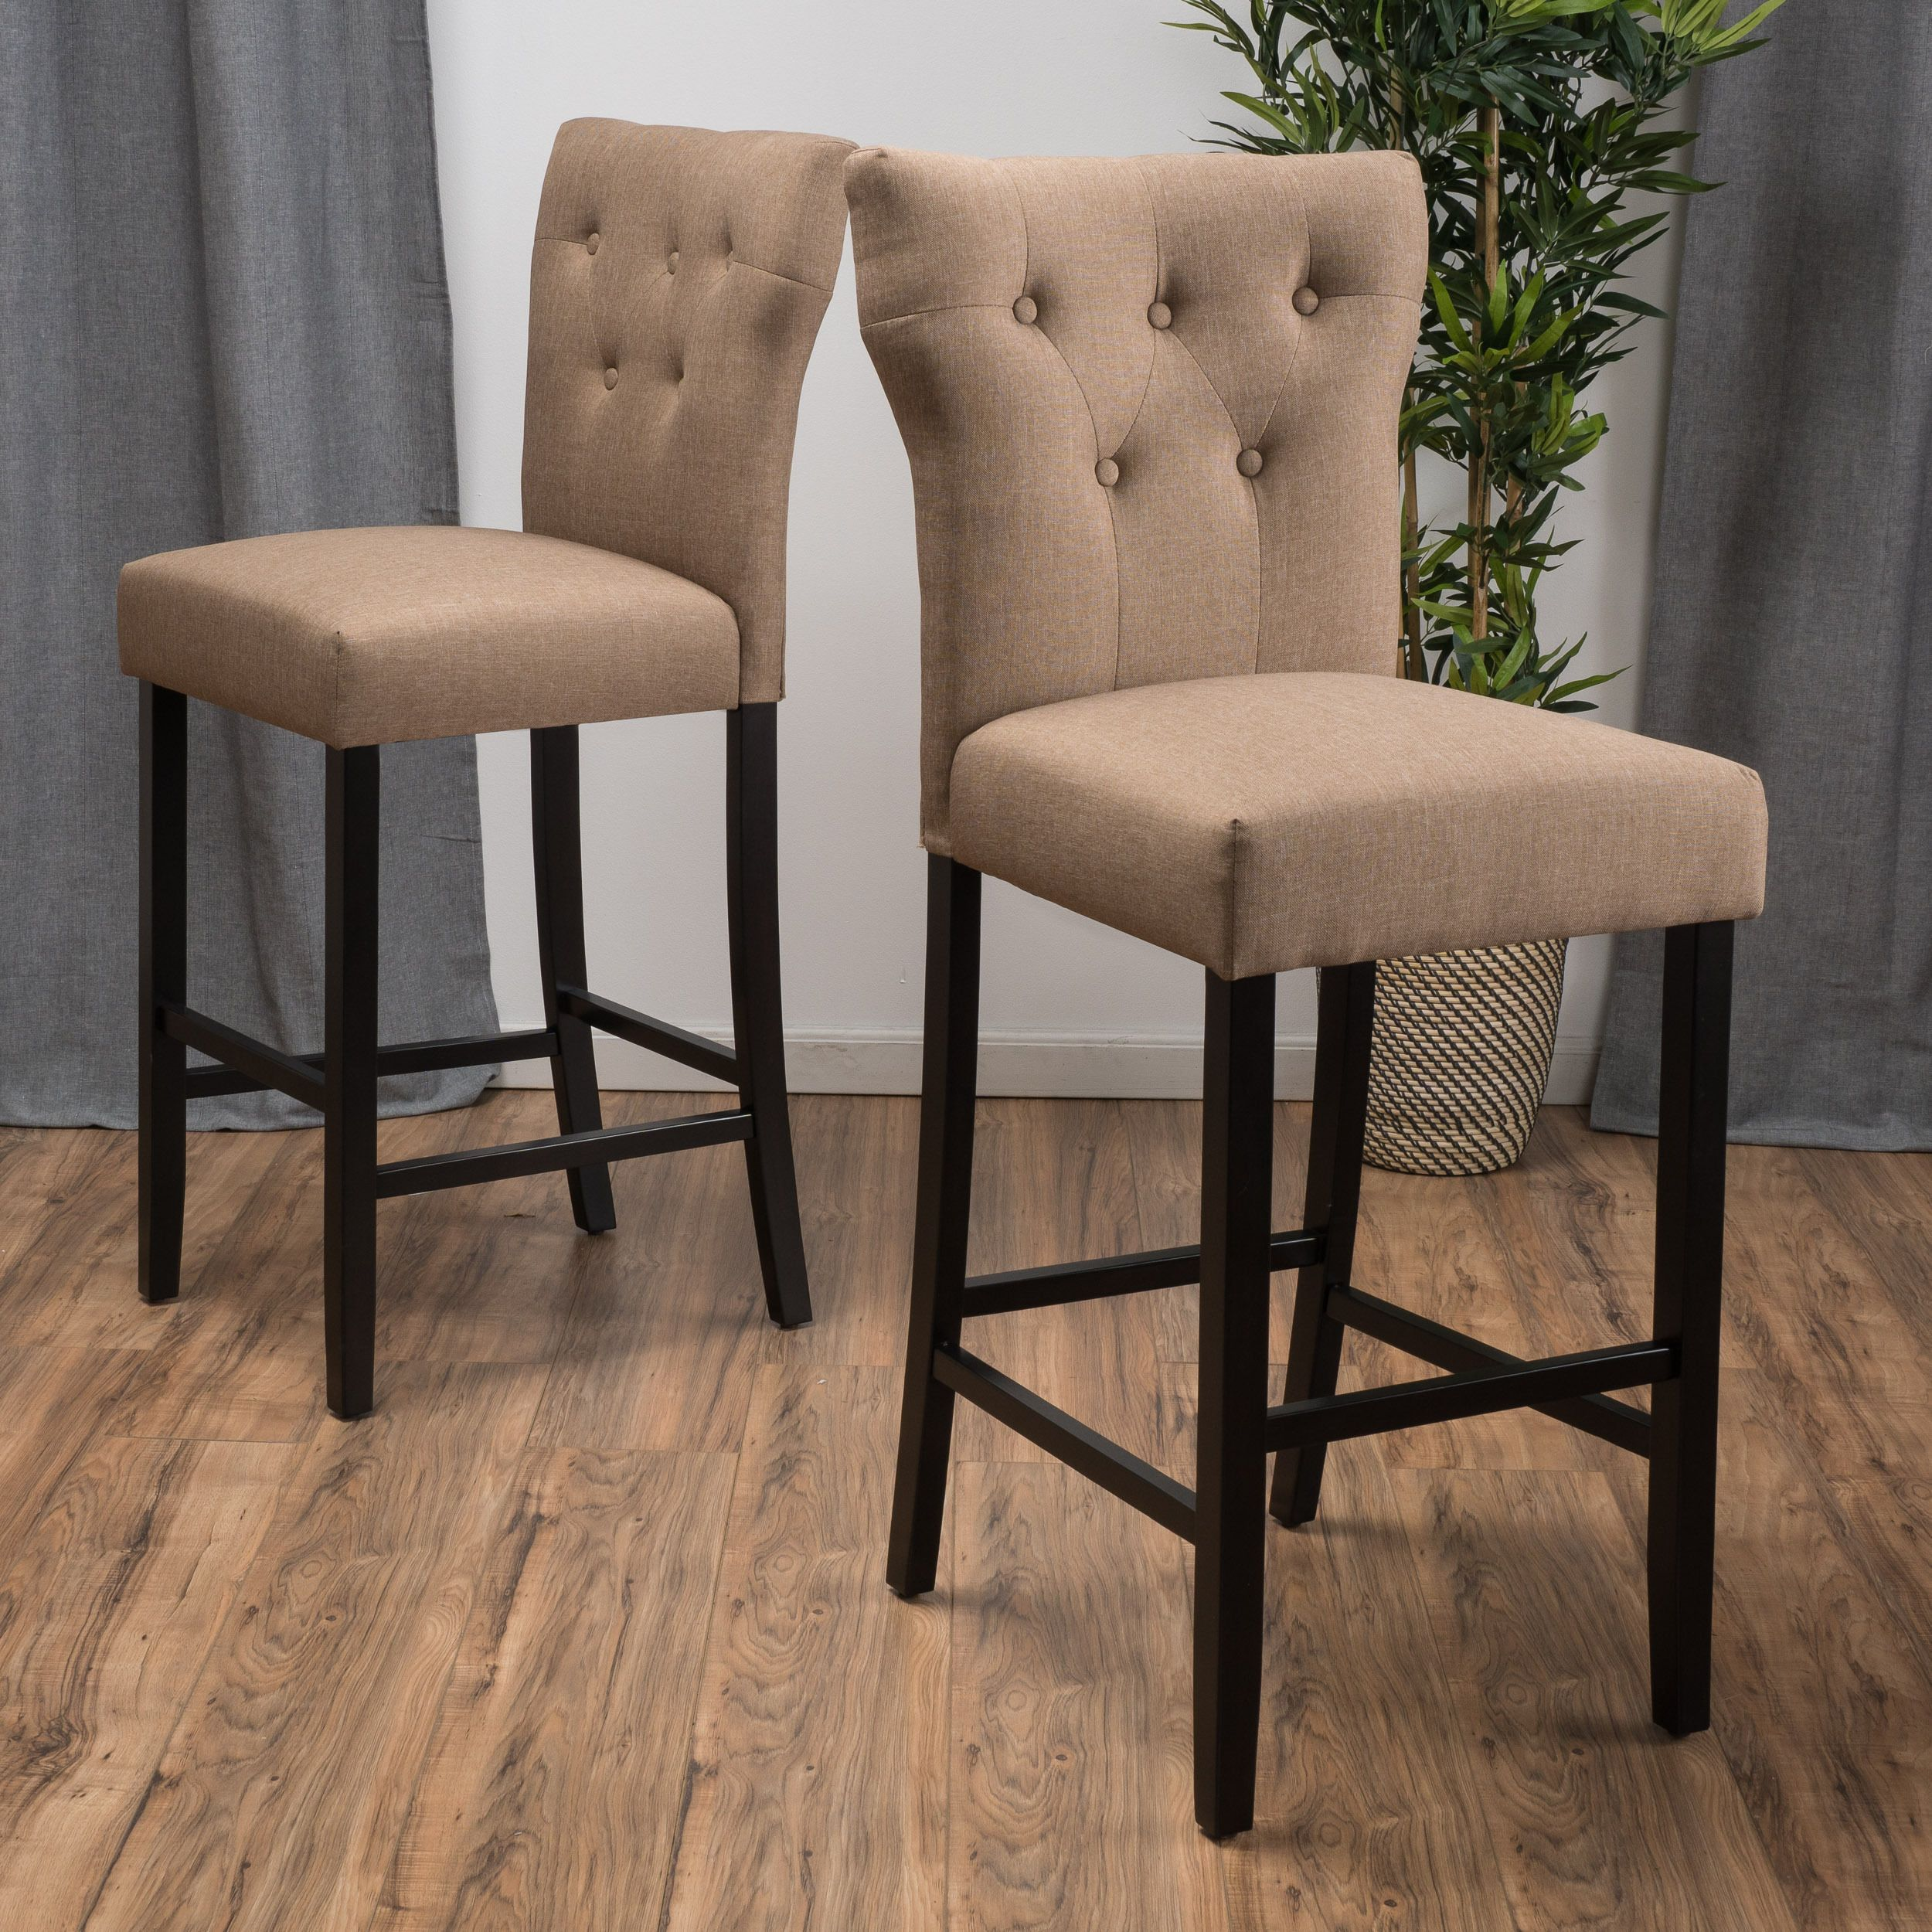 The Christopher Knight Home Donner counter stool is a stylish addition to any decor. Resting on sturdy rubberwood legs, the Donner counter stool offers enhanced stability and durability.